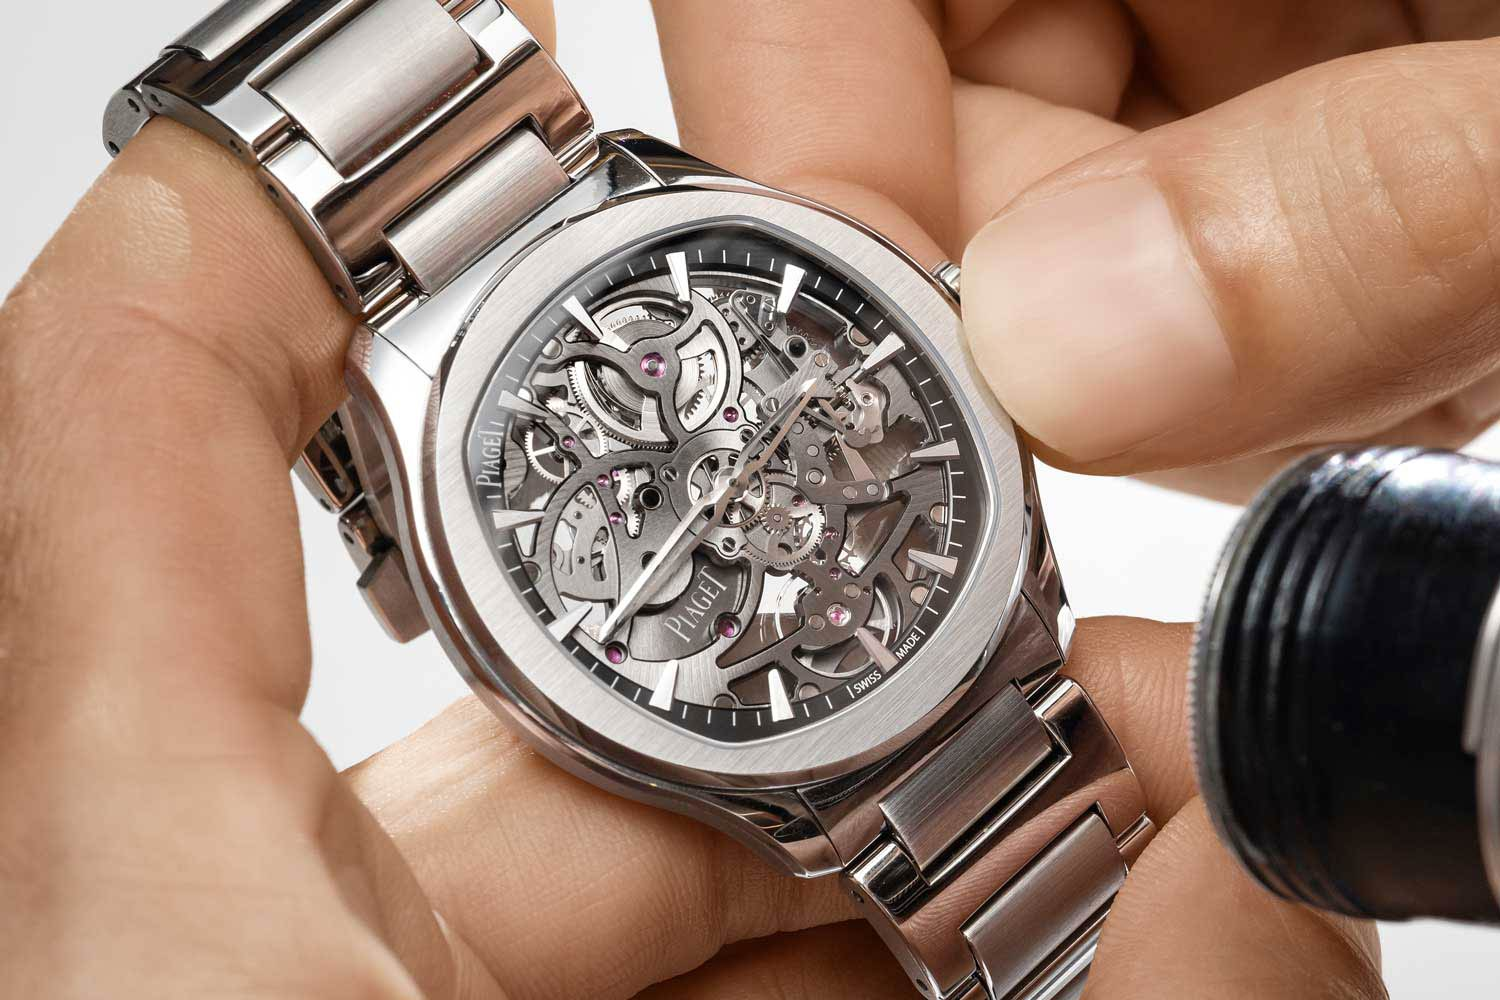 Piaget Polo Skeleton powered by the now evolved, 2.4mm 1200S1 self-winding caliber